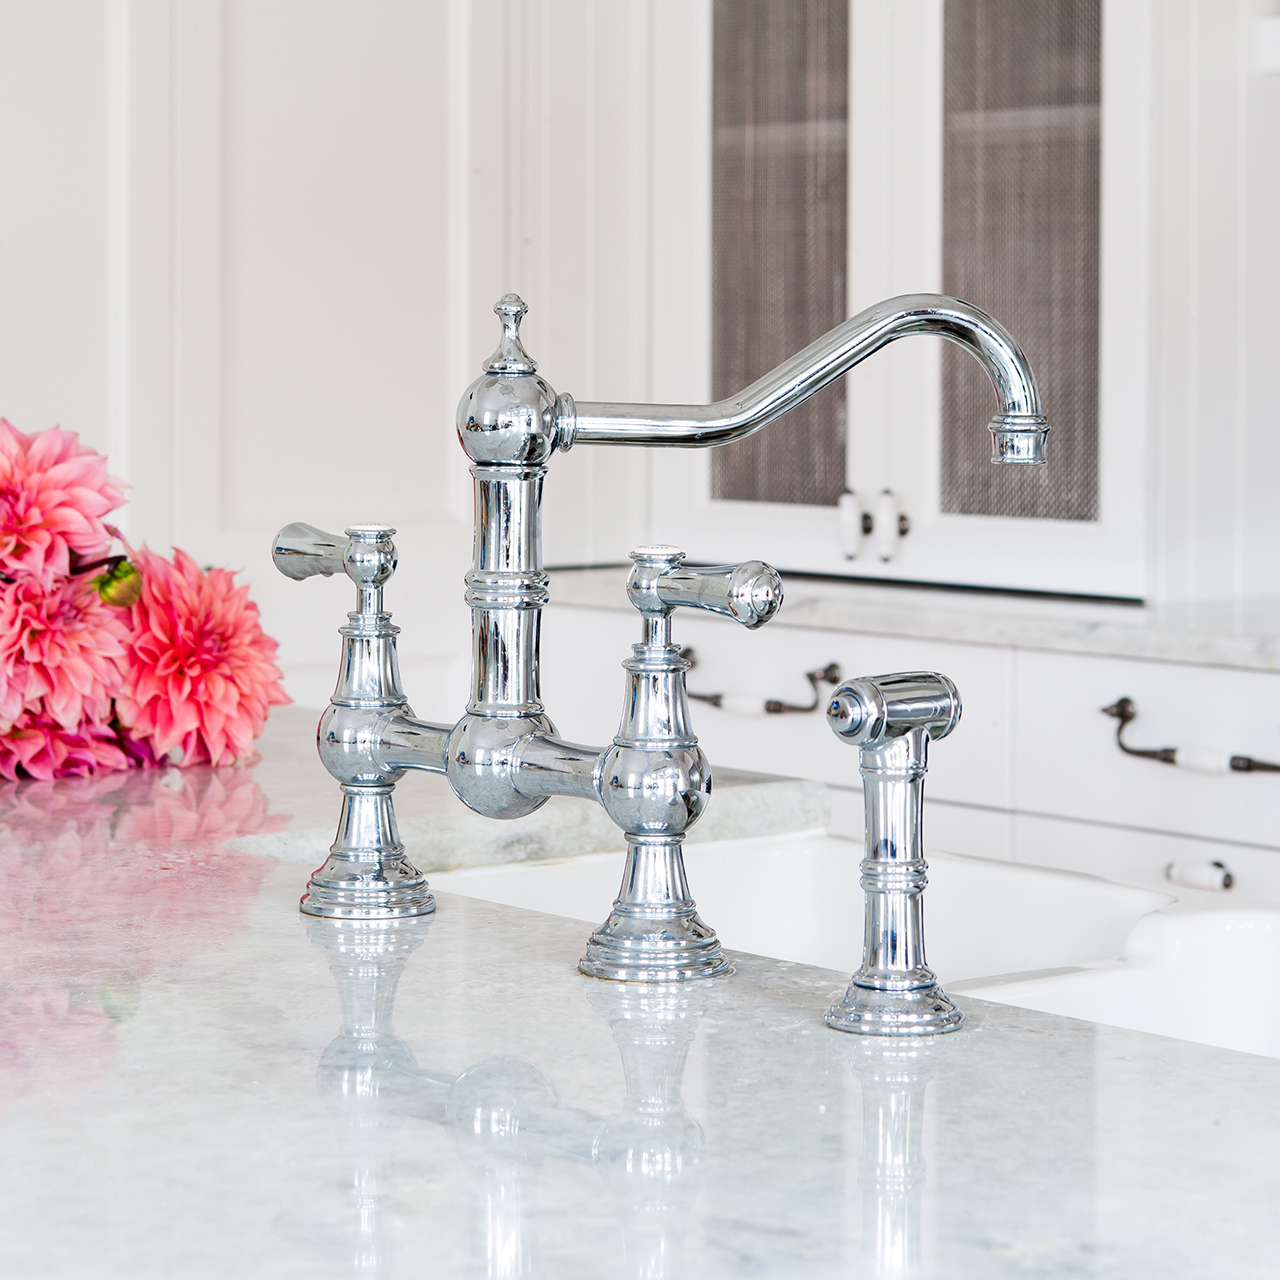 our perrin collections collection faucet picardie country rowe rinse and faucets with kitchen taps mixer levers sink